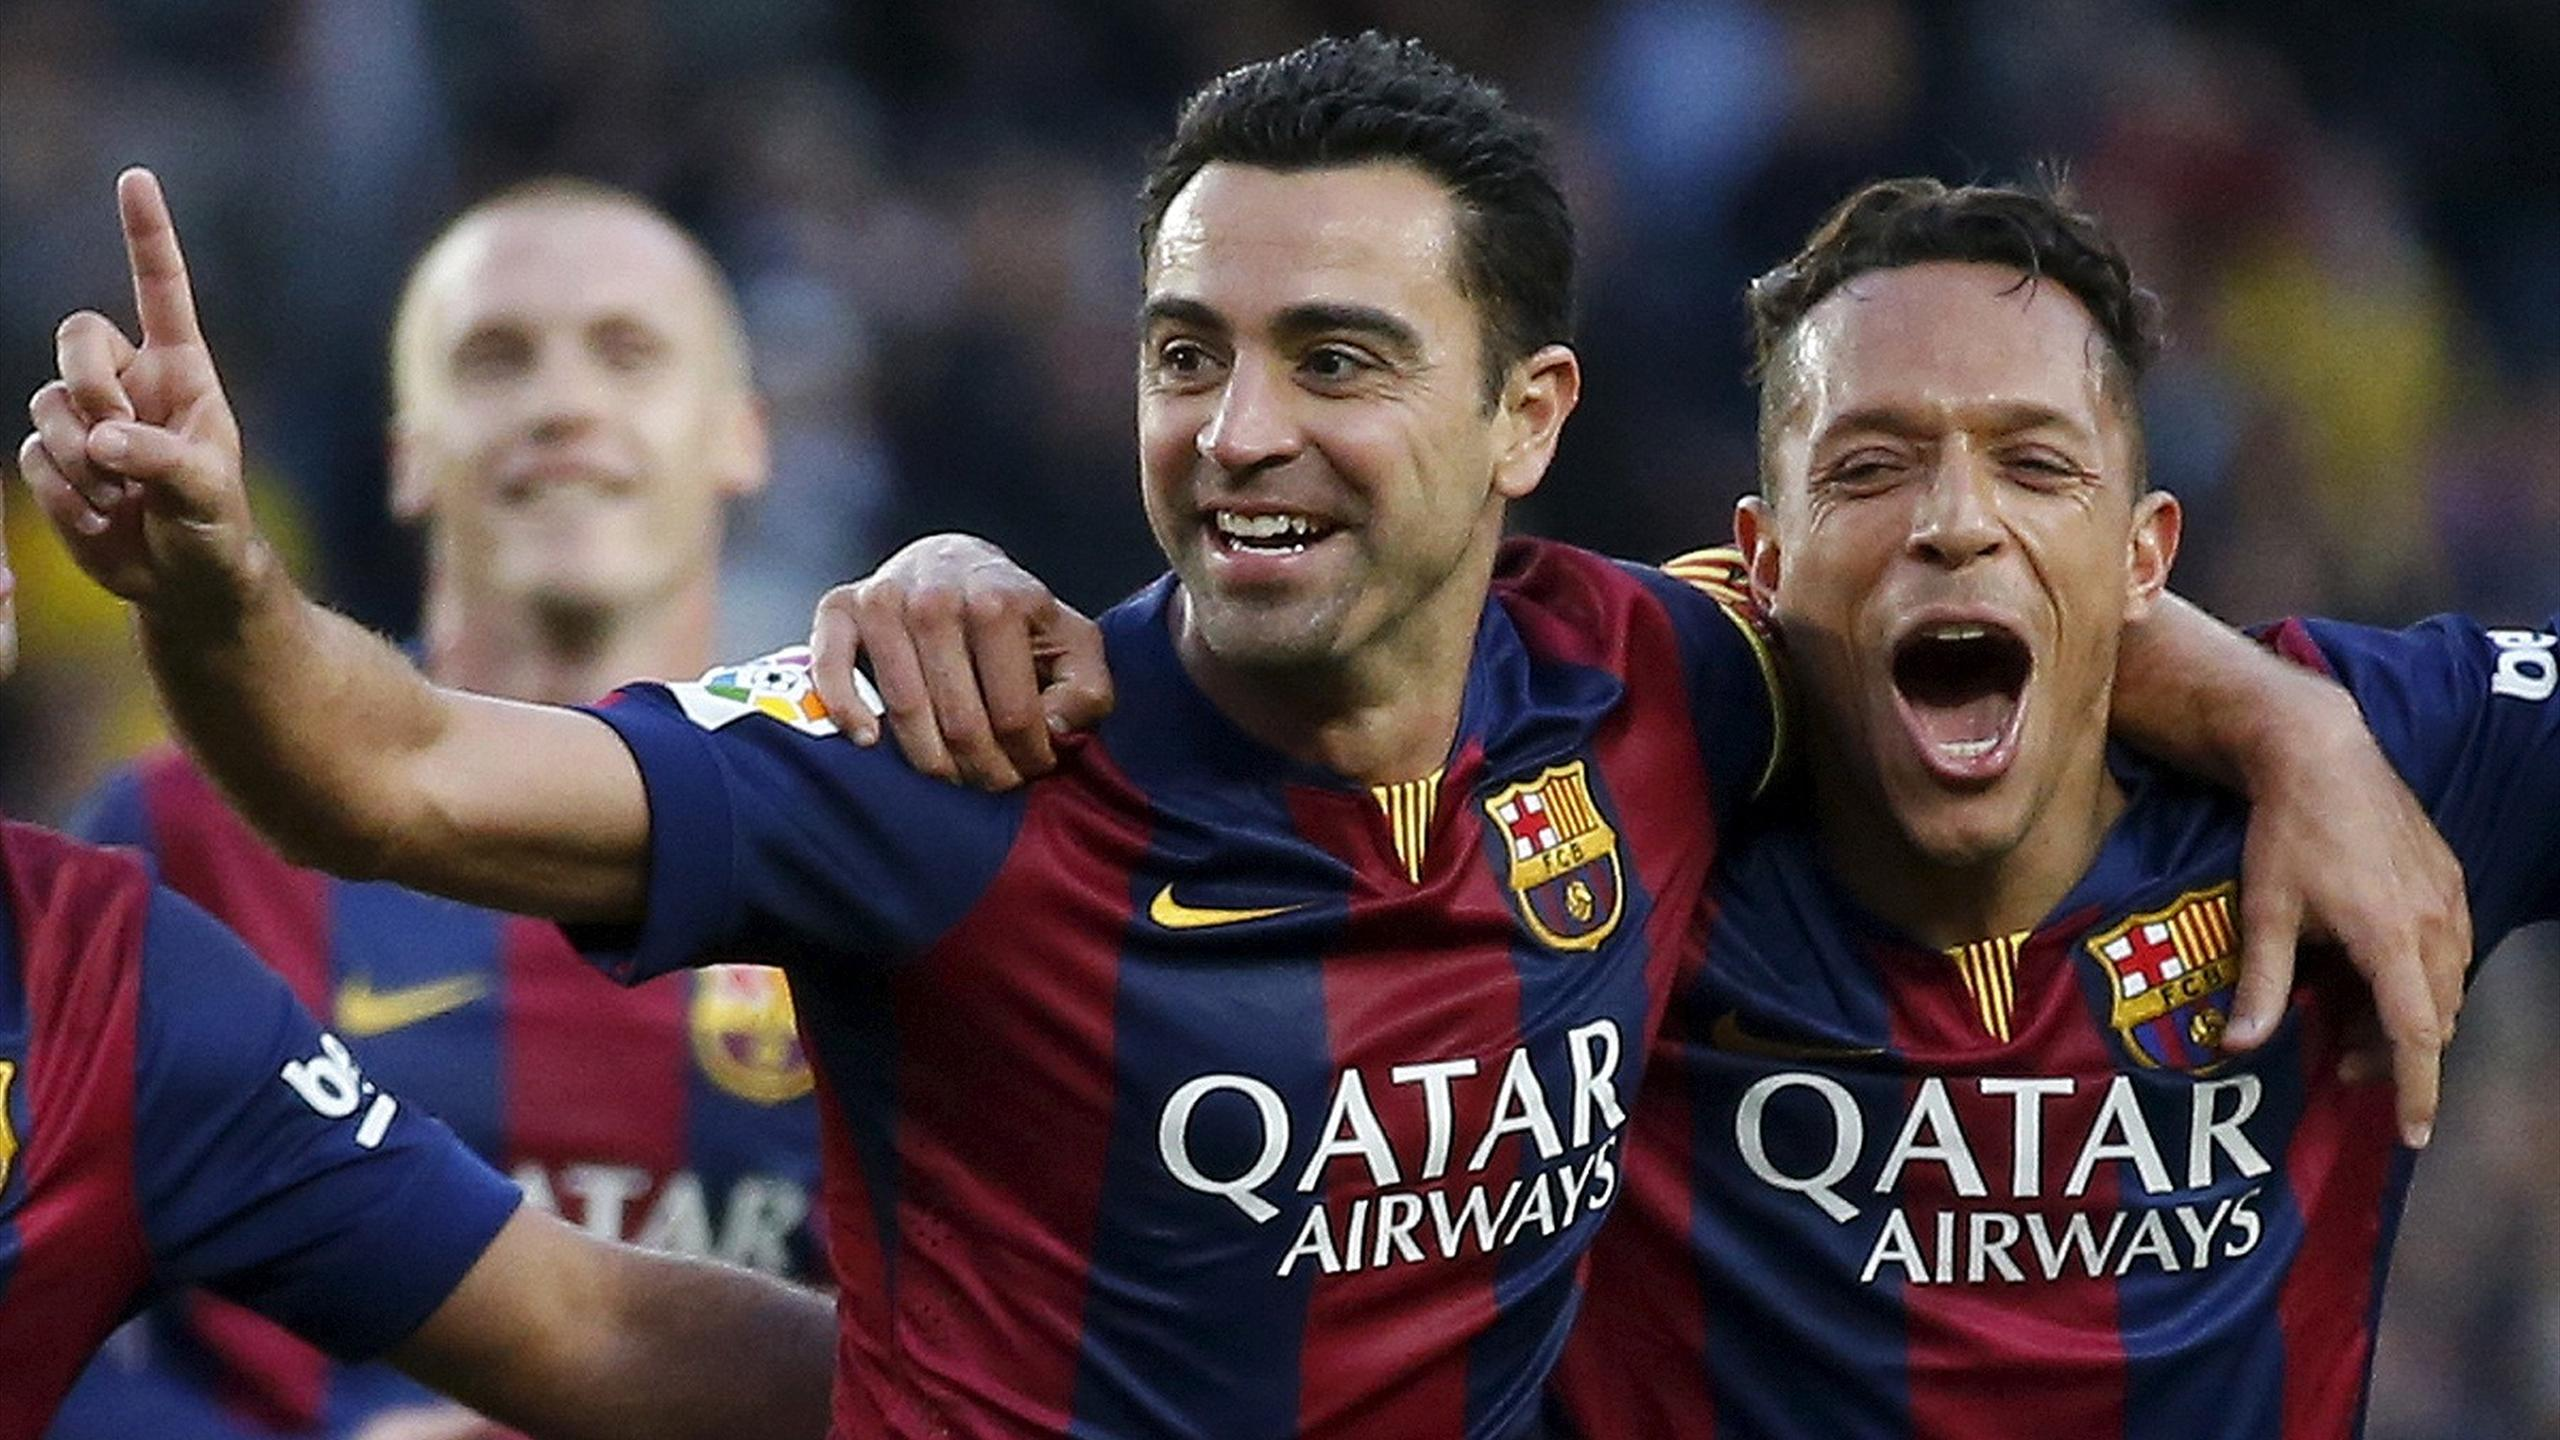 Barcelona's Xavi Hernandez (L) celebrates his goal against Getafe with teammate Adriano during their Spanish first division soccer match at Nou Camp stadium in Barcelona